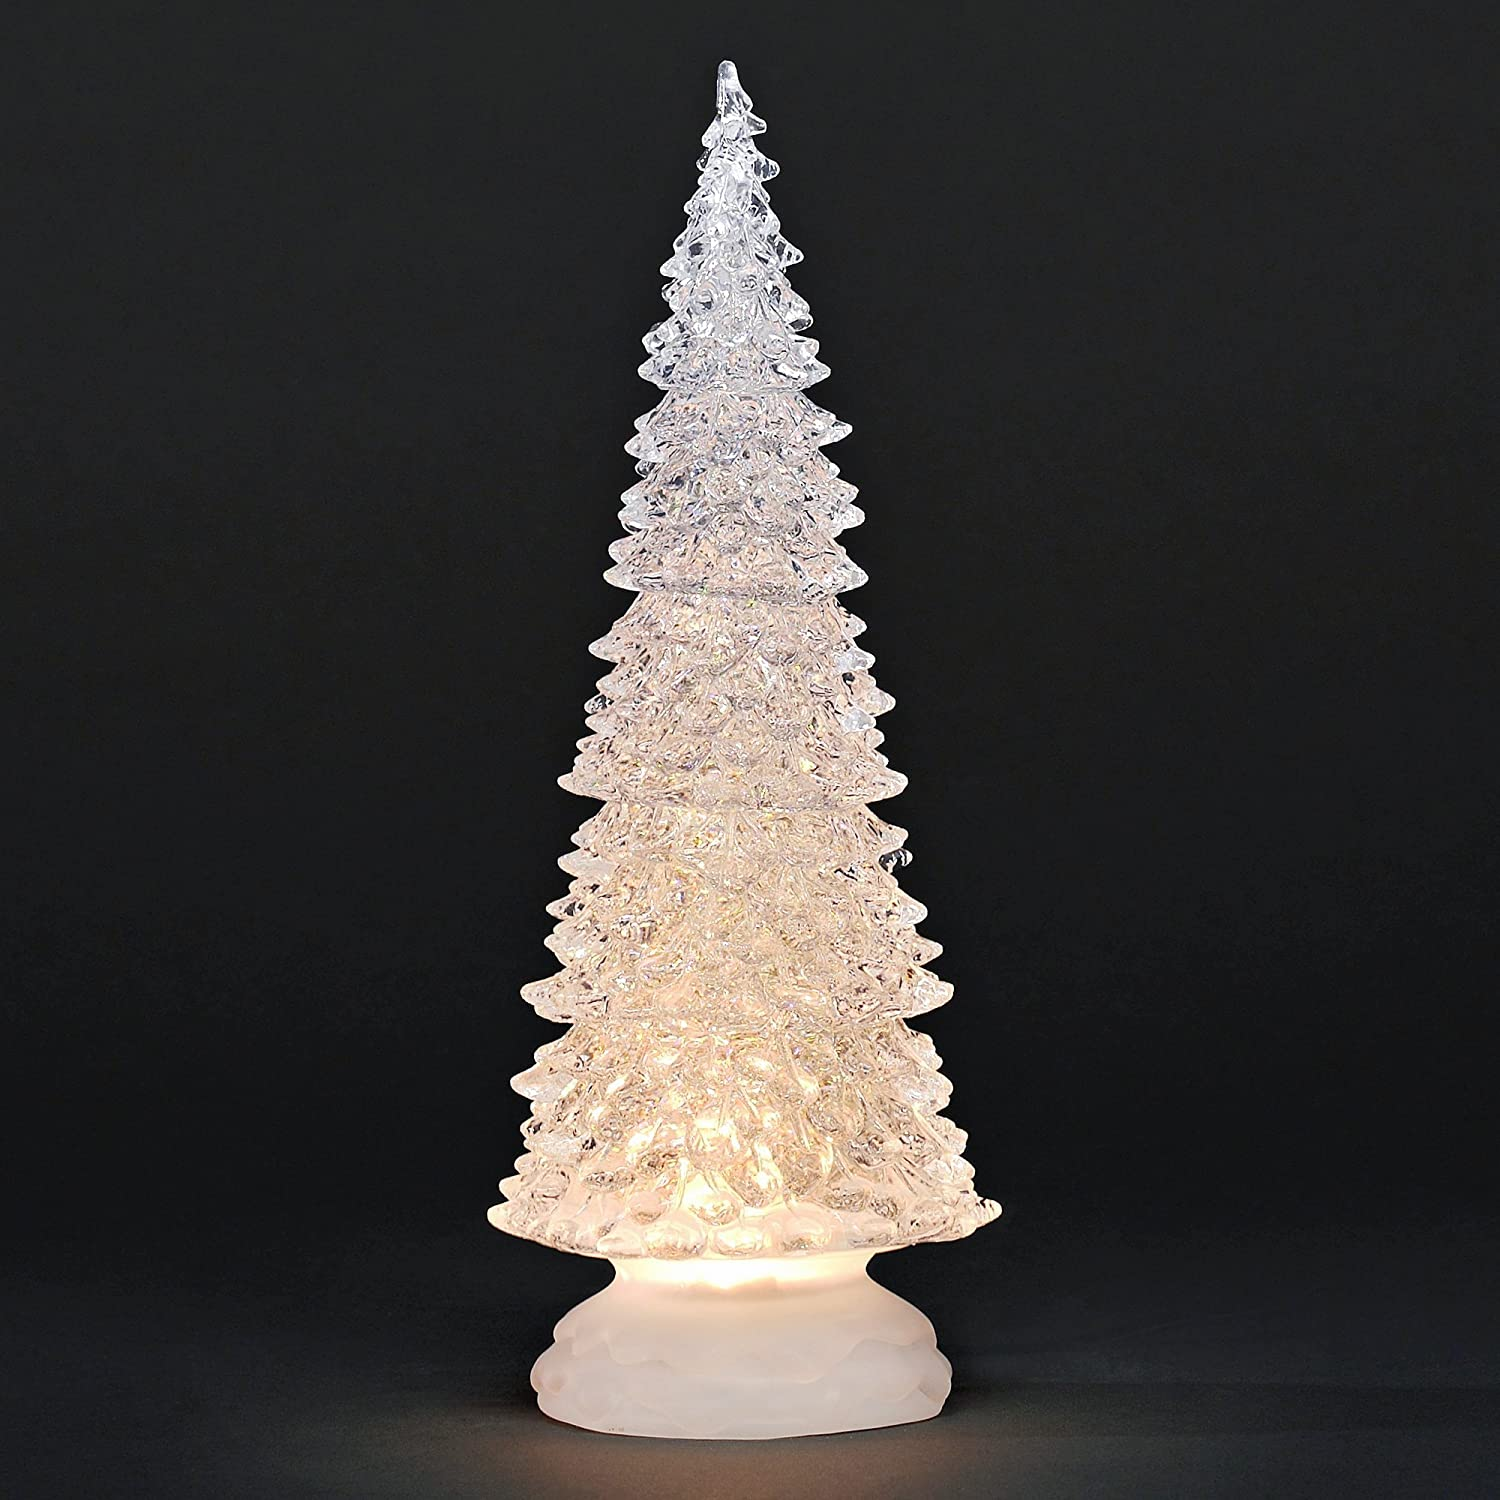 Sparkly Christmas Tree swirling glitter natural warmer white LED